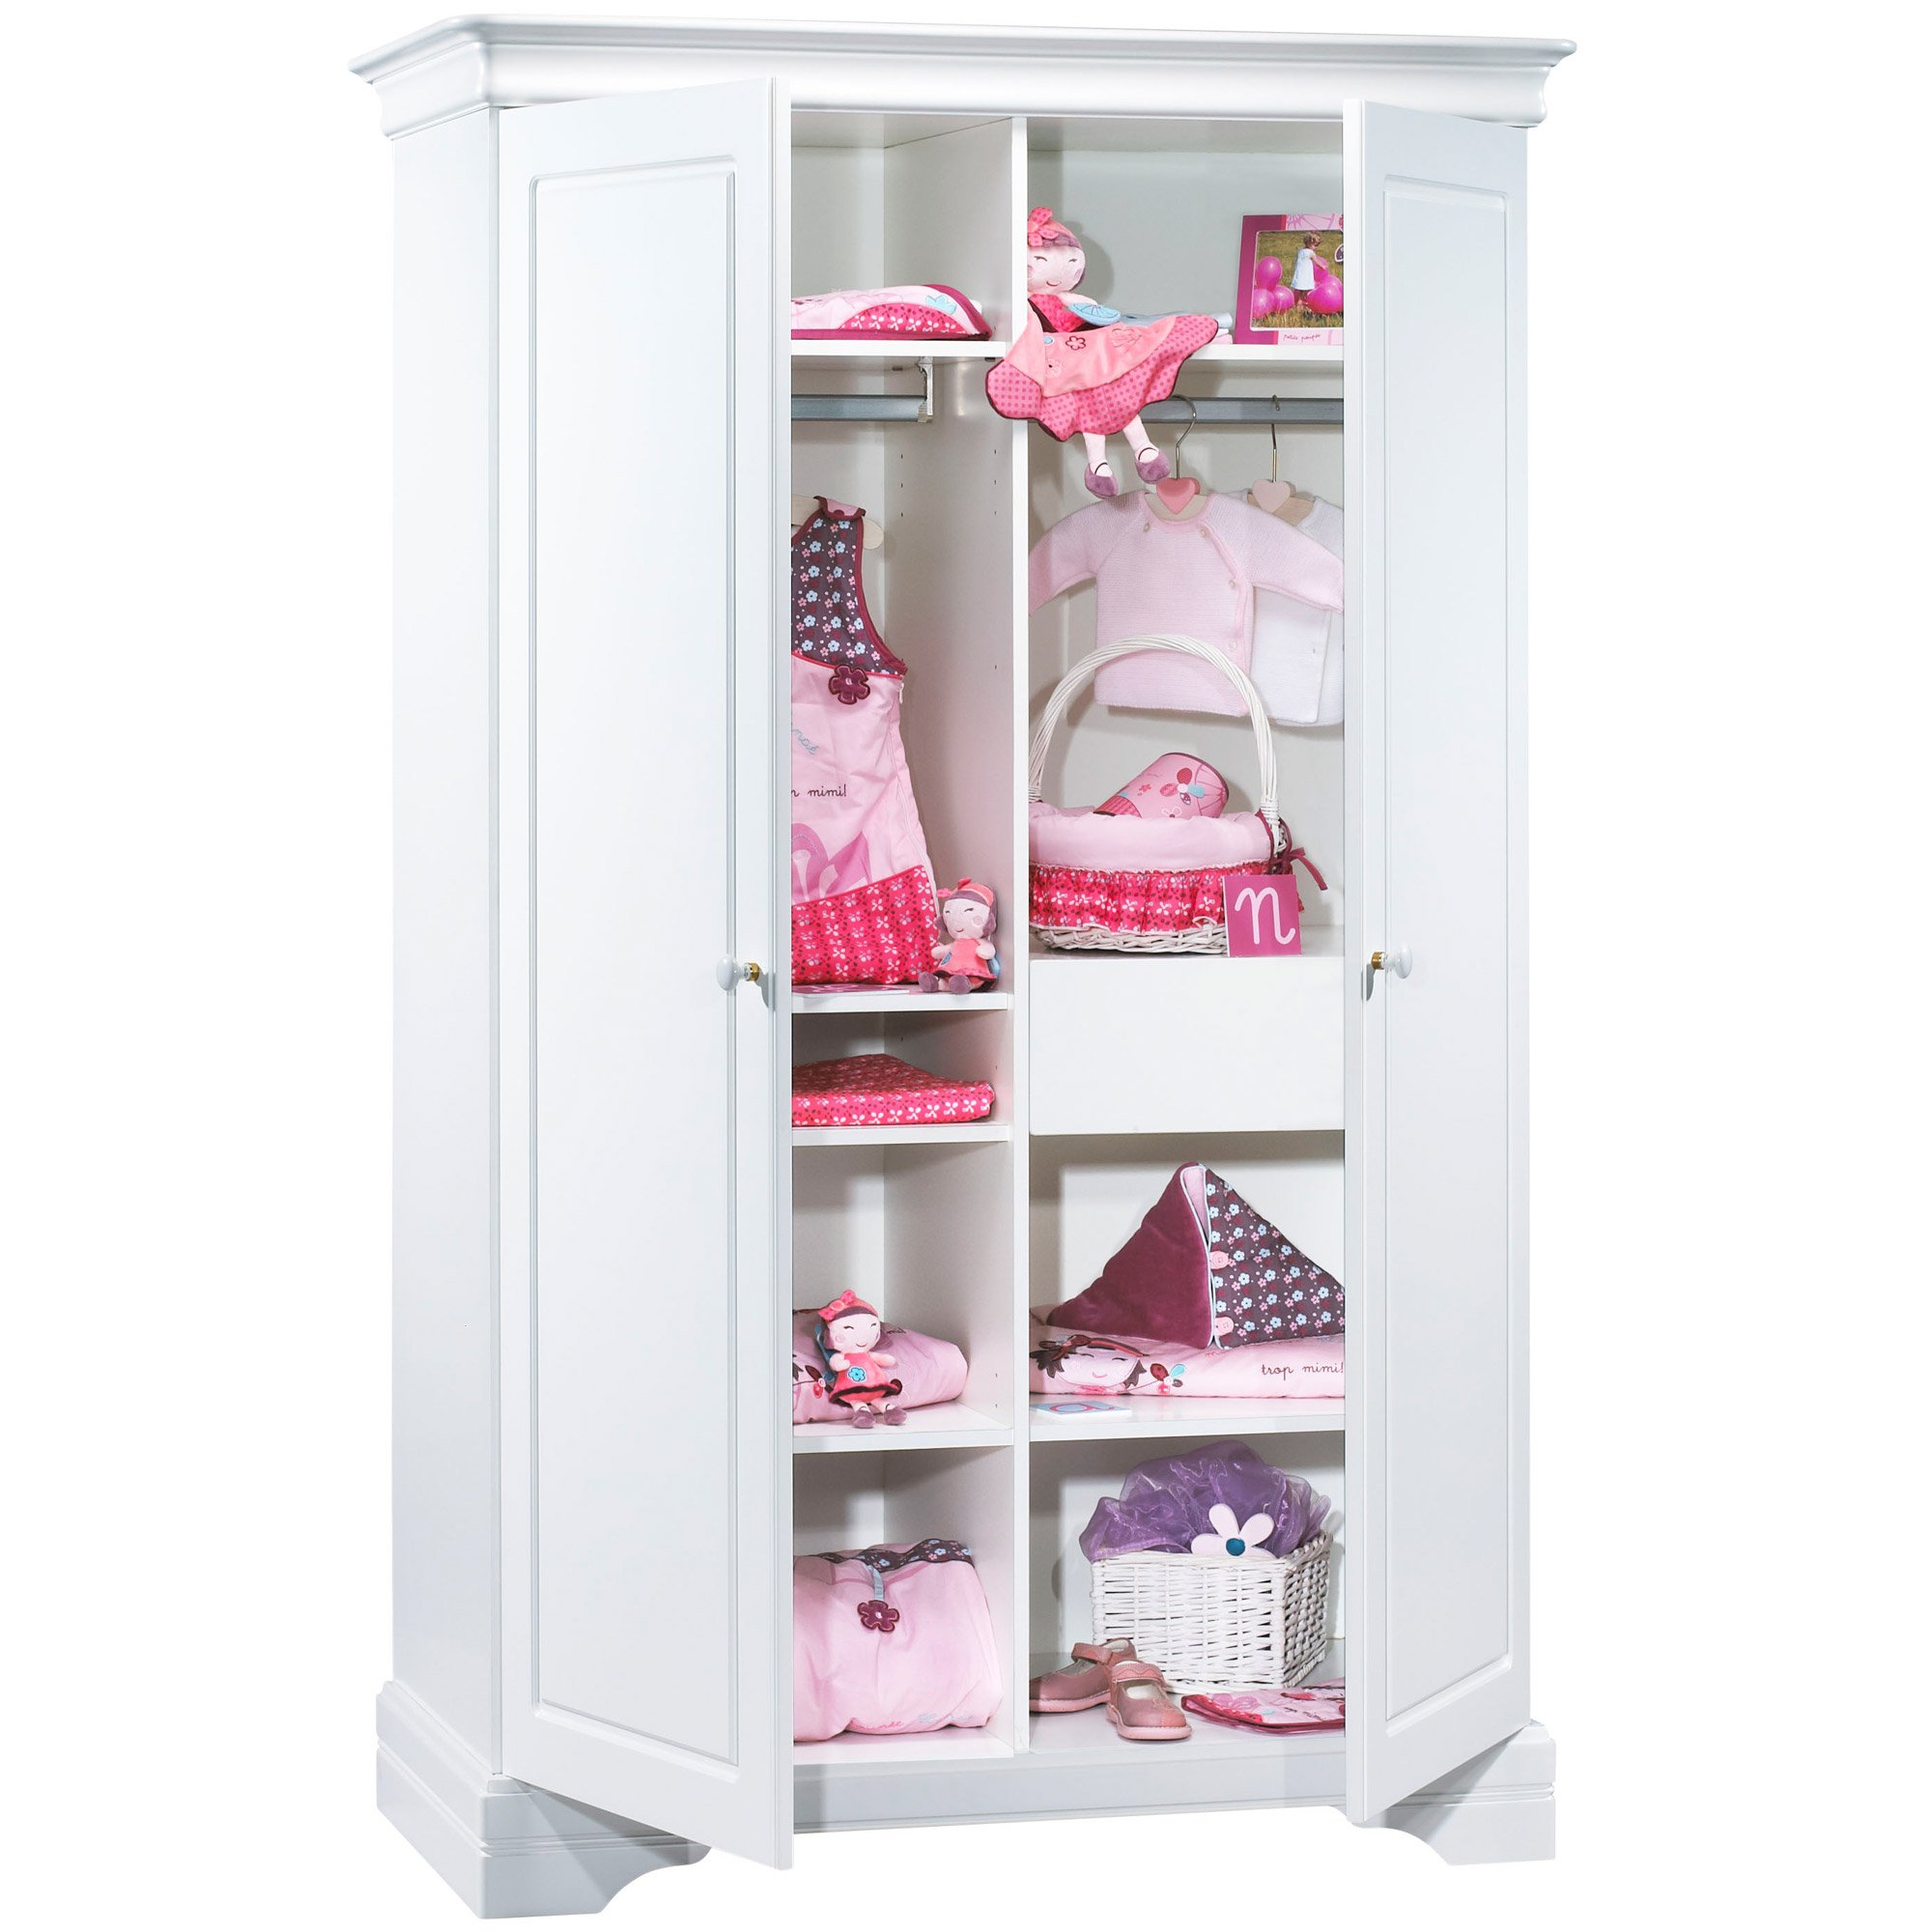 Elodie armoire 2 portes Blanc  de Sauthon Baby's Sweet Home